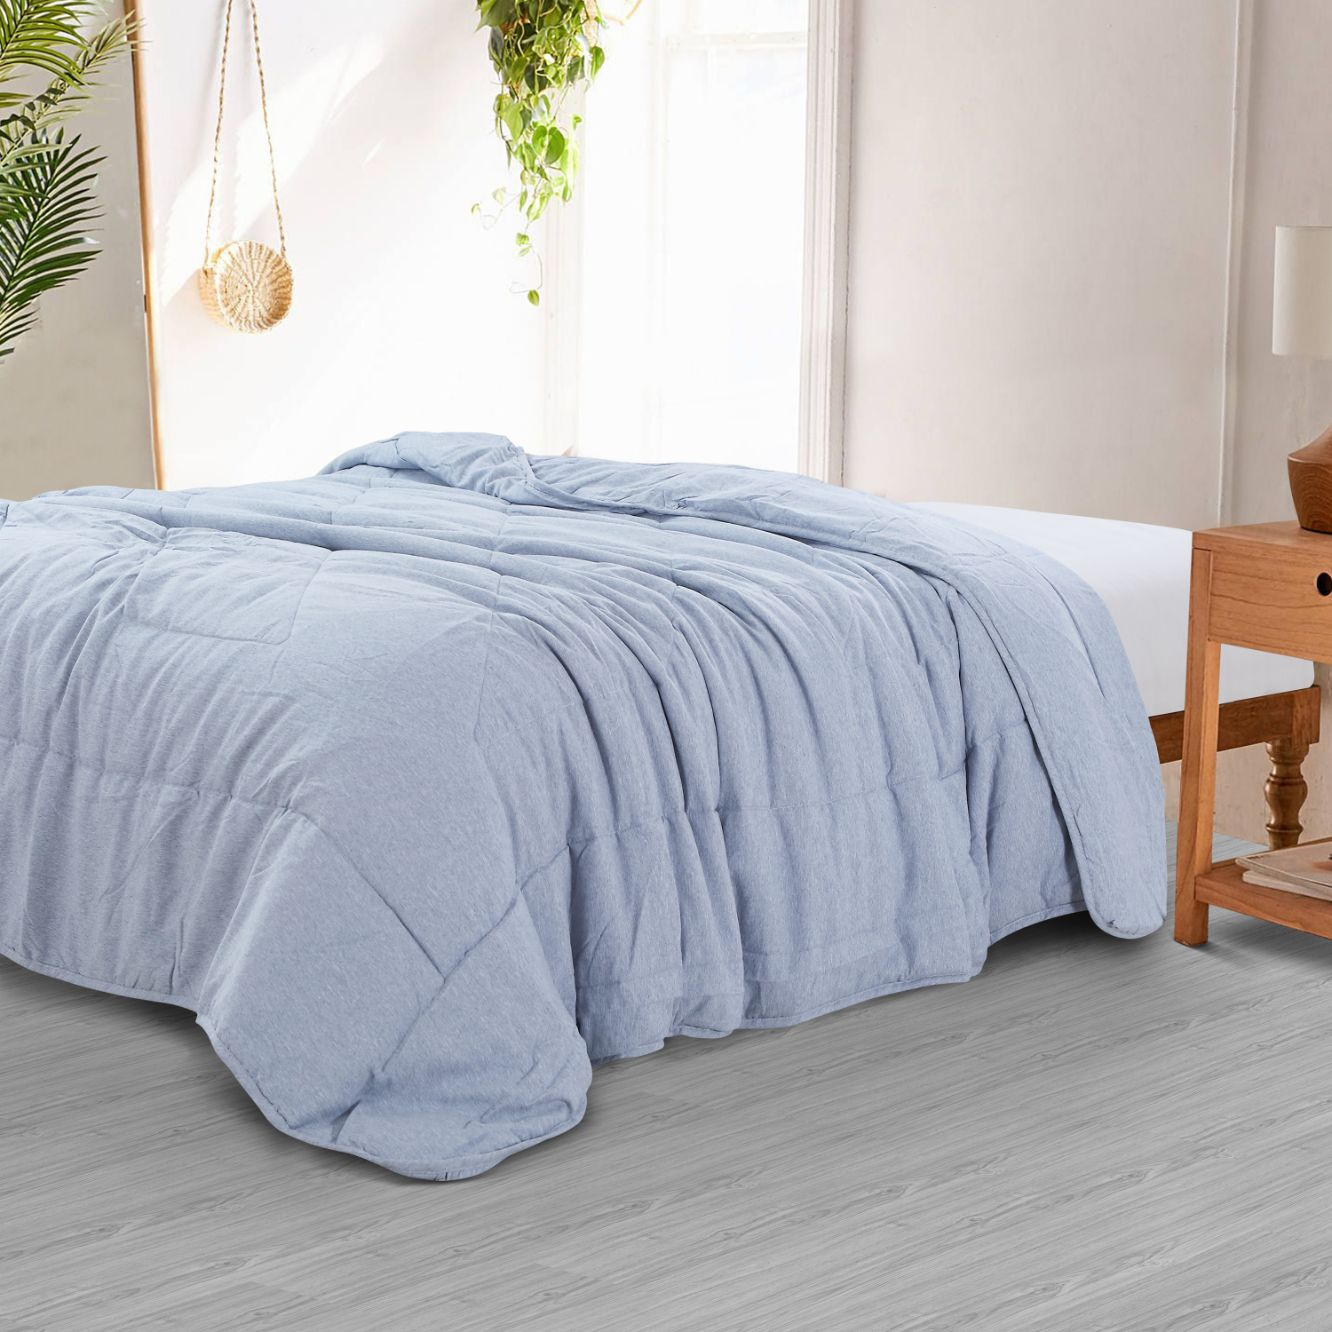 Countryside Summer AC Quilt - Blue